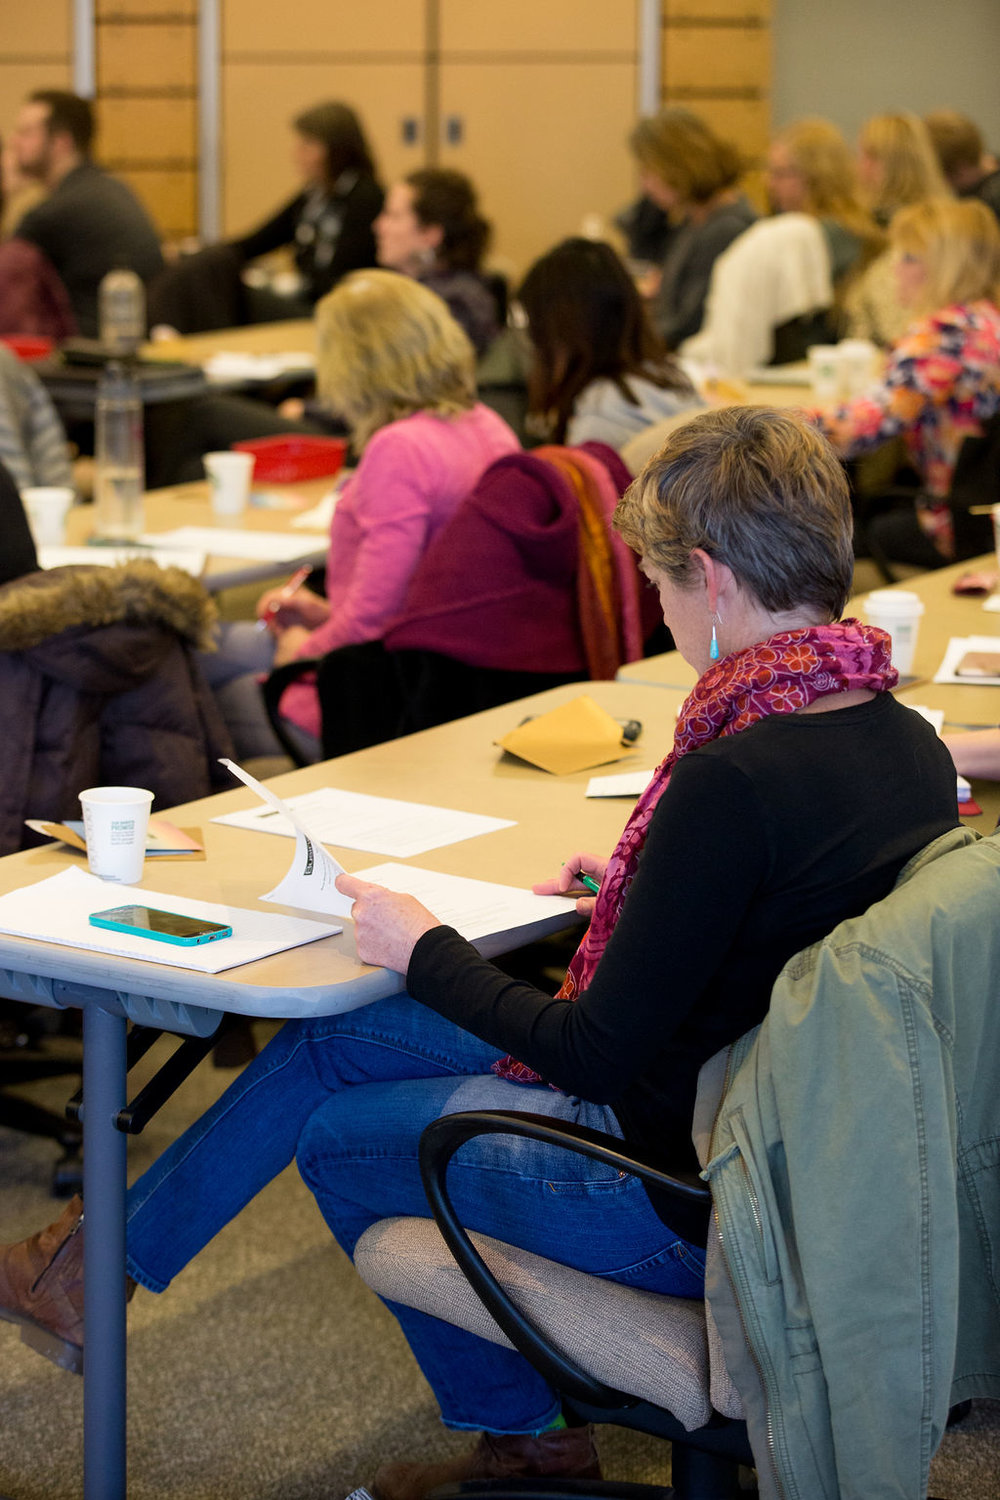 Student Workshop Attendee 2.jpg